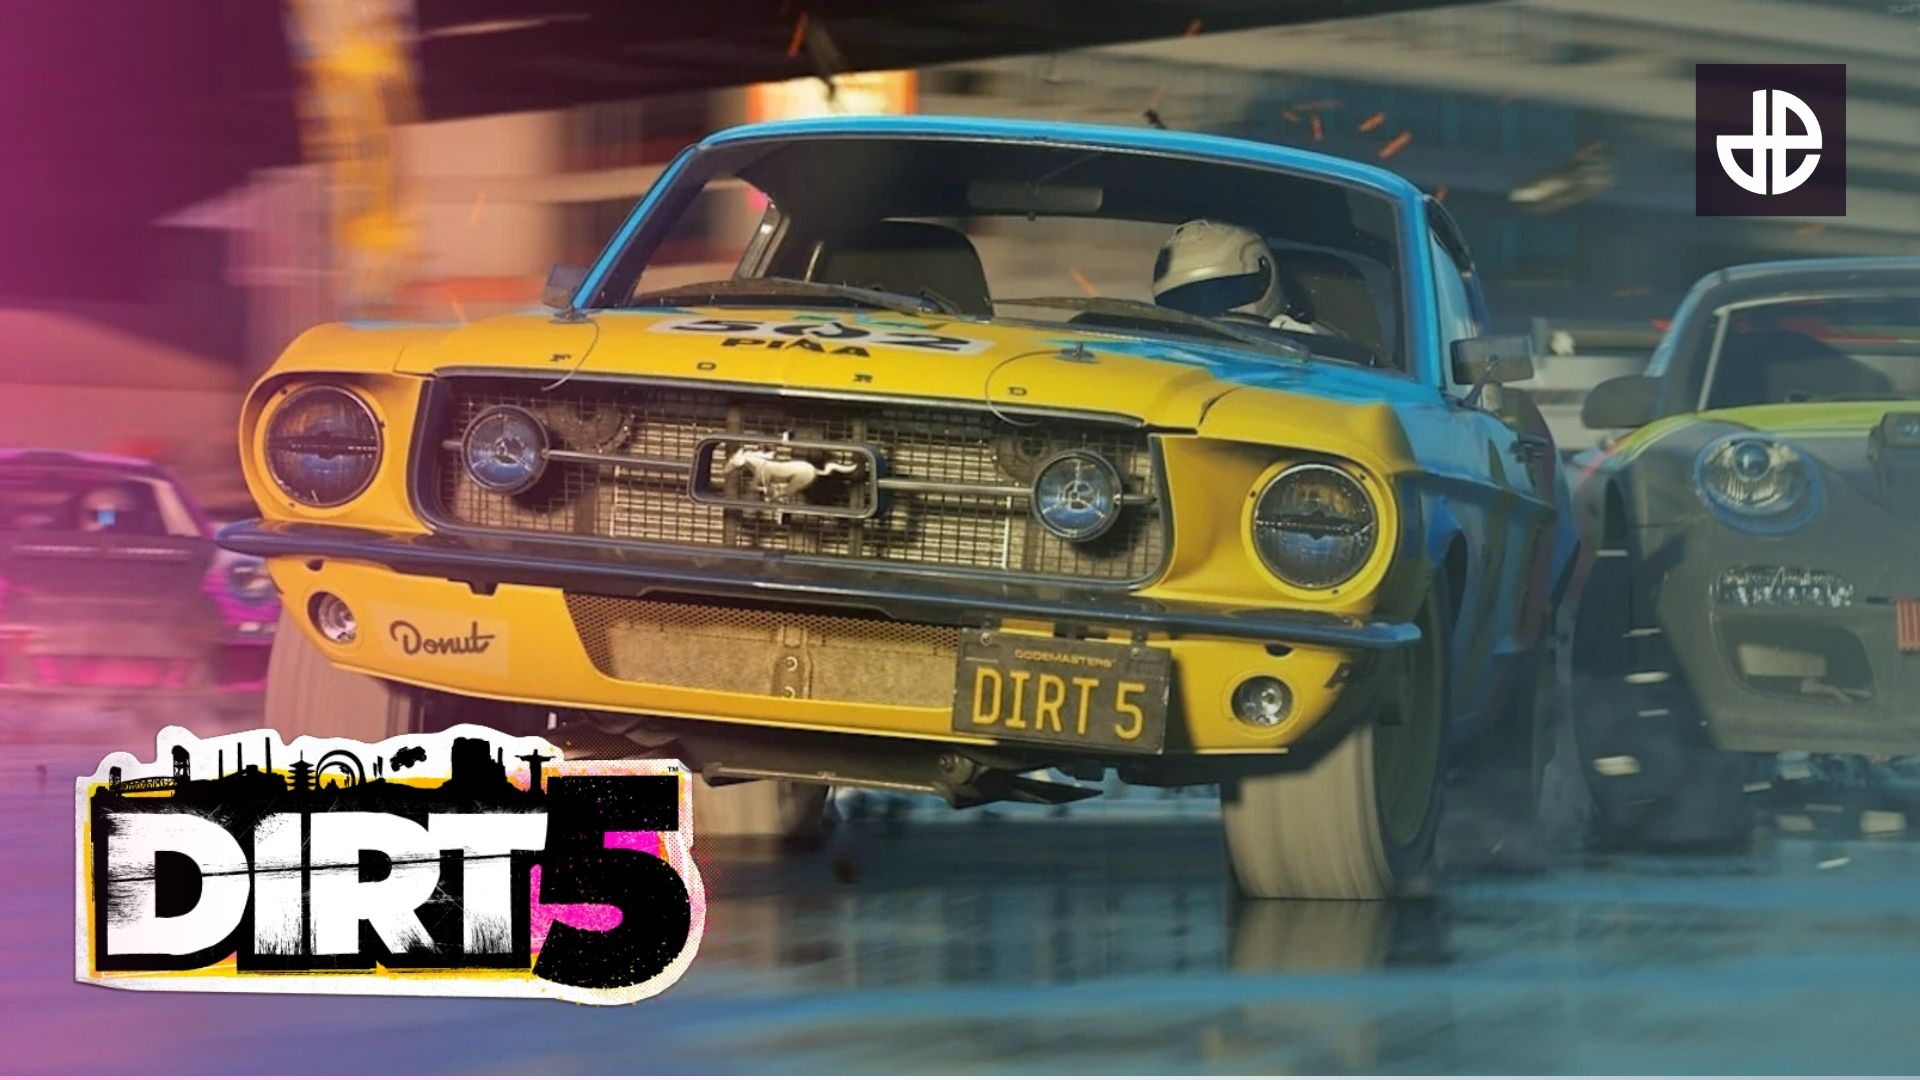 Dirt 5 cars list with mustang